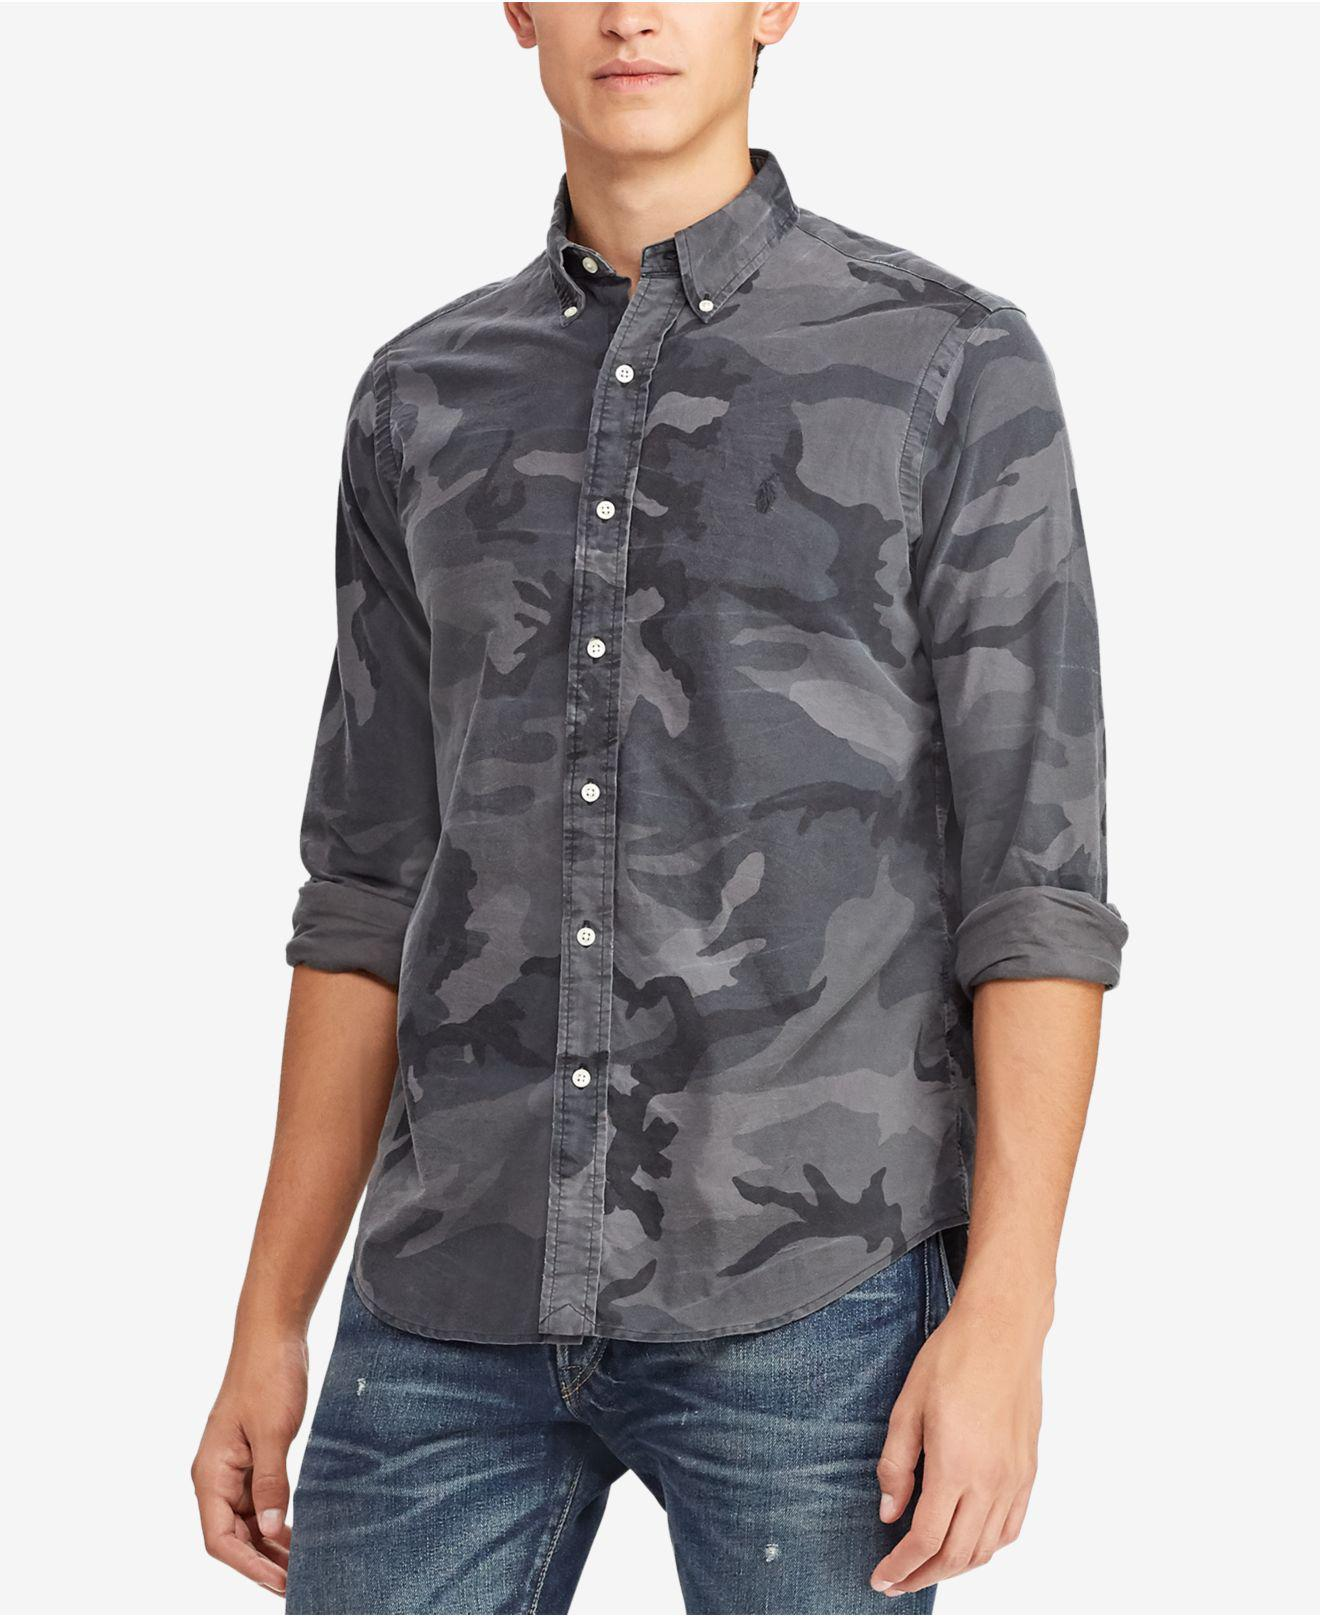 8d2a6c9e18ef Polo Ralph Lauren. Men s Gray Camouflage-print Classic Fit Button-down Shirt